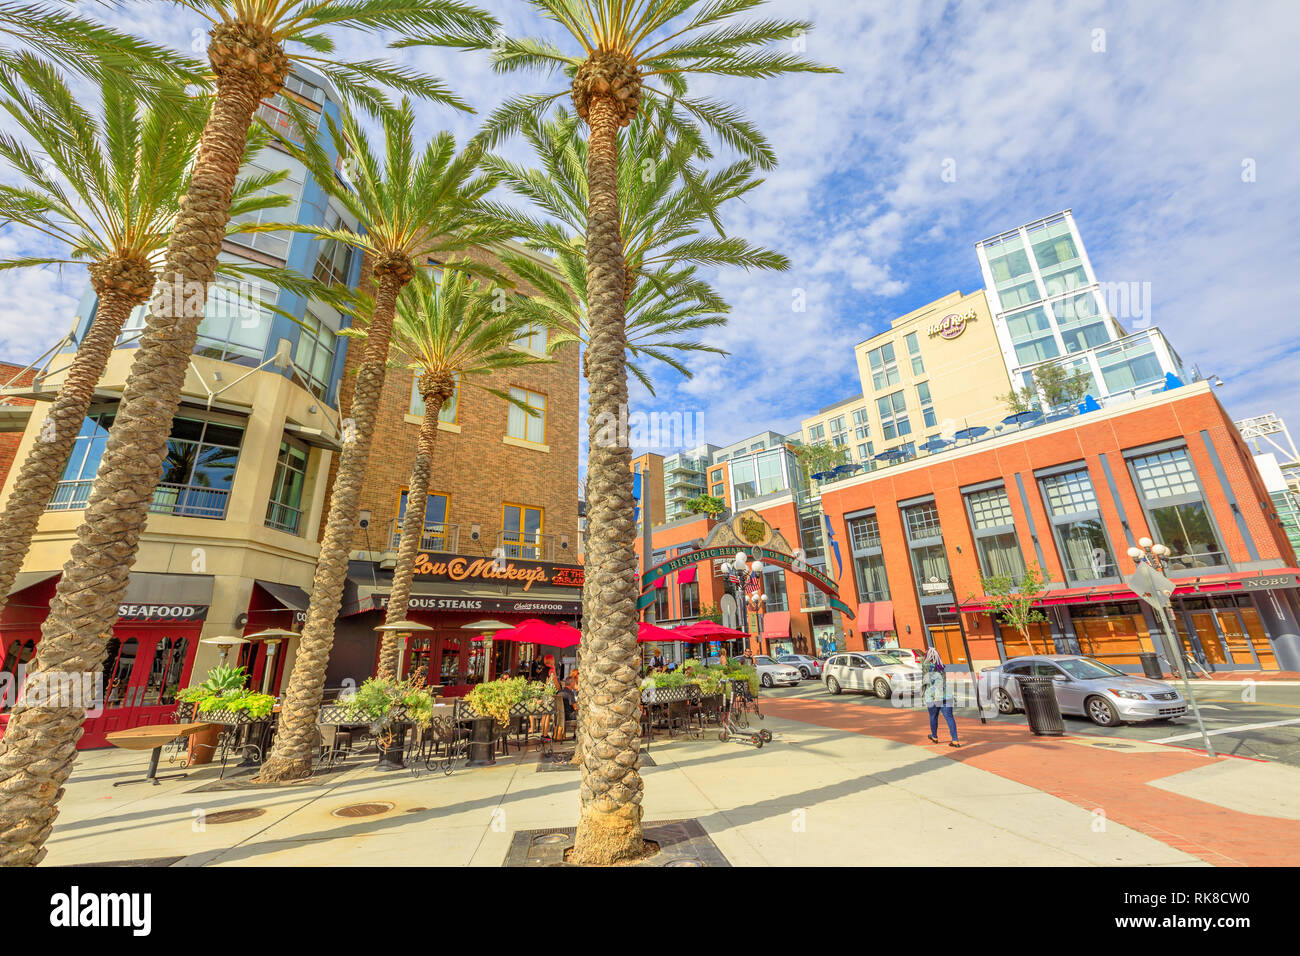 San Diego, California, United States - July 31, 2018: entrance sign to Gaslamp Quarter, a Historic Victorian District of San Diego Downtown. Street - Stock Image